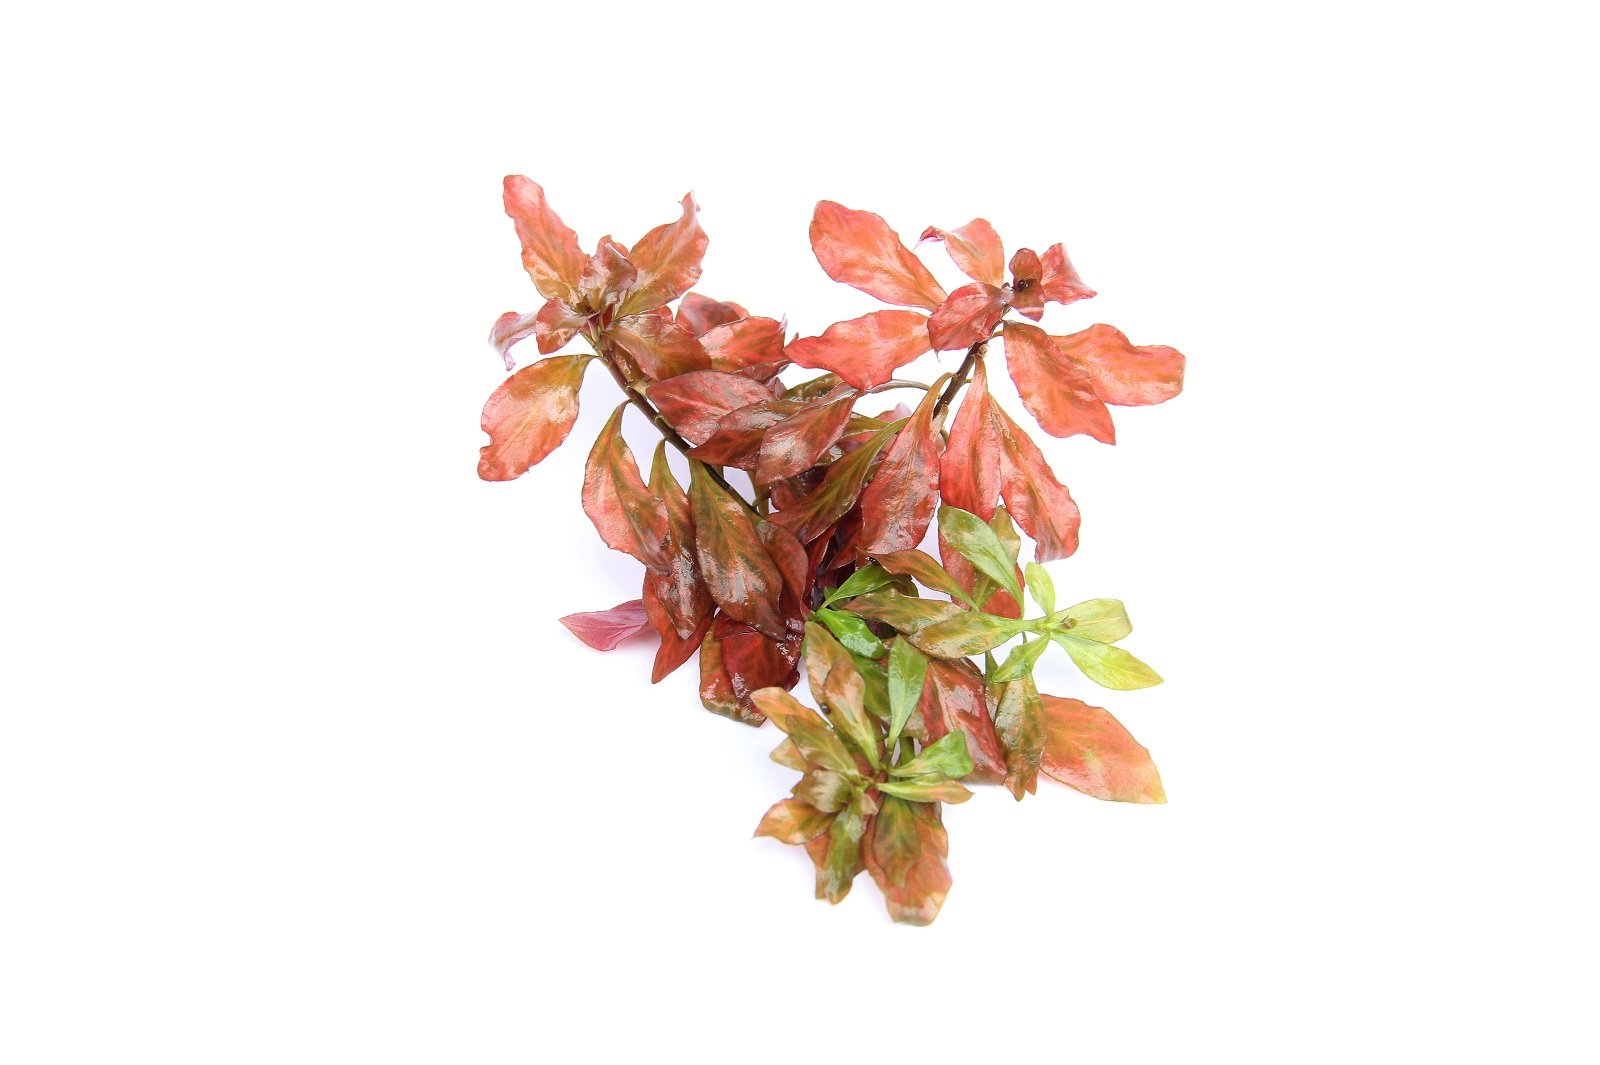 Ludwigia spec. Dark Orange Wasserpflanze Dennerle Aquariumpflanze